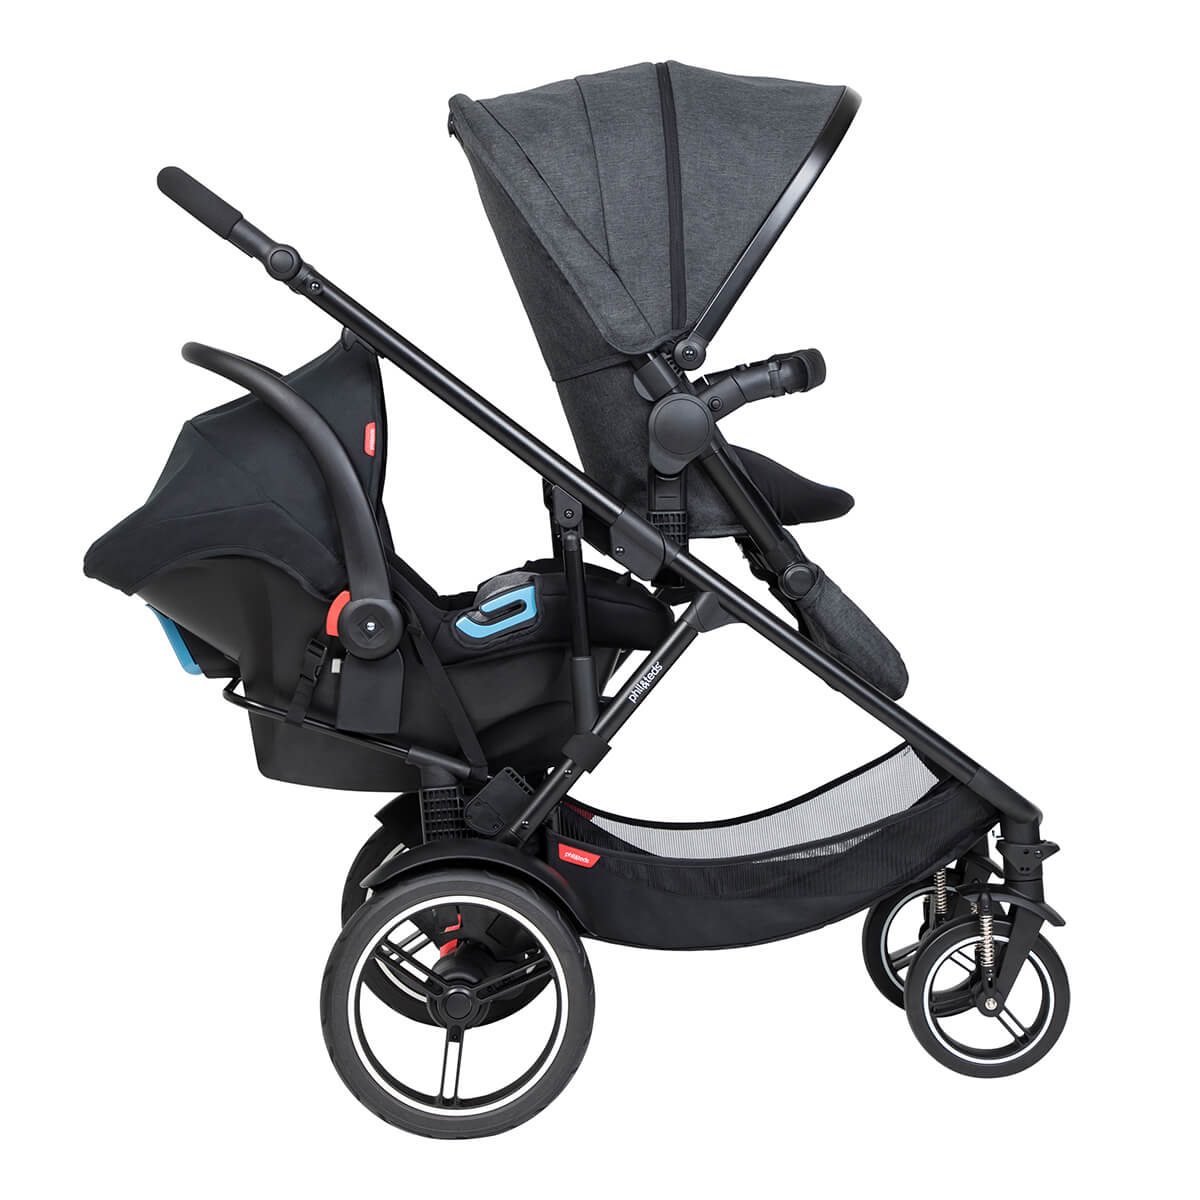 https://cdn.accentuate.io/4394883809385/19119322726505/philteds-voyager-buggy-in-forward-facing-mode-with-travel-system-in-the-rear-v1633400486597.jpg?1200x1200